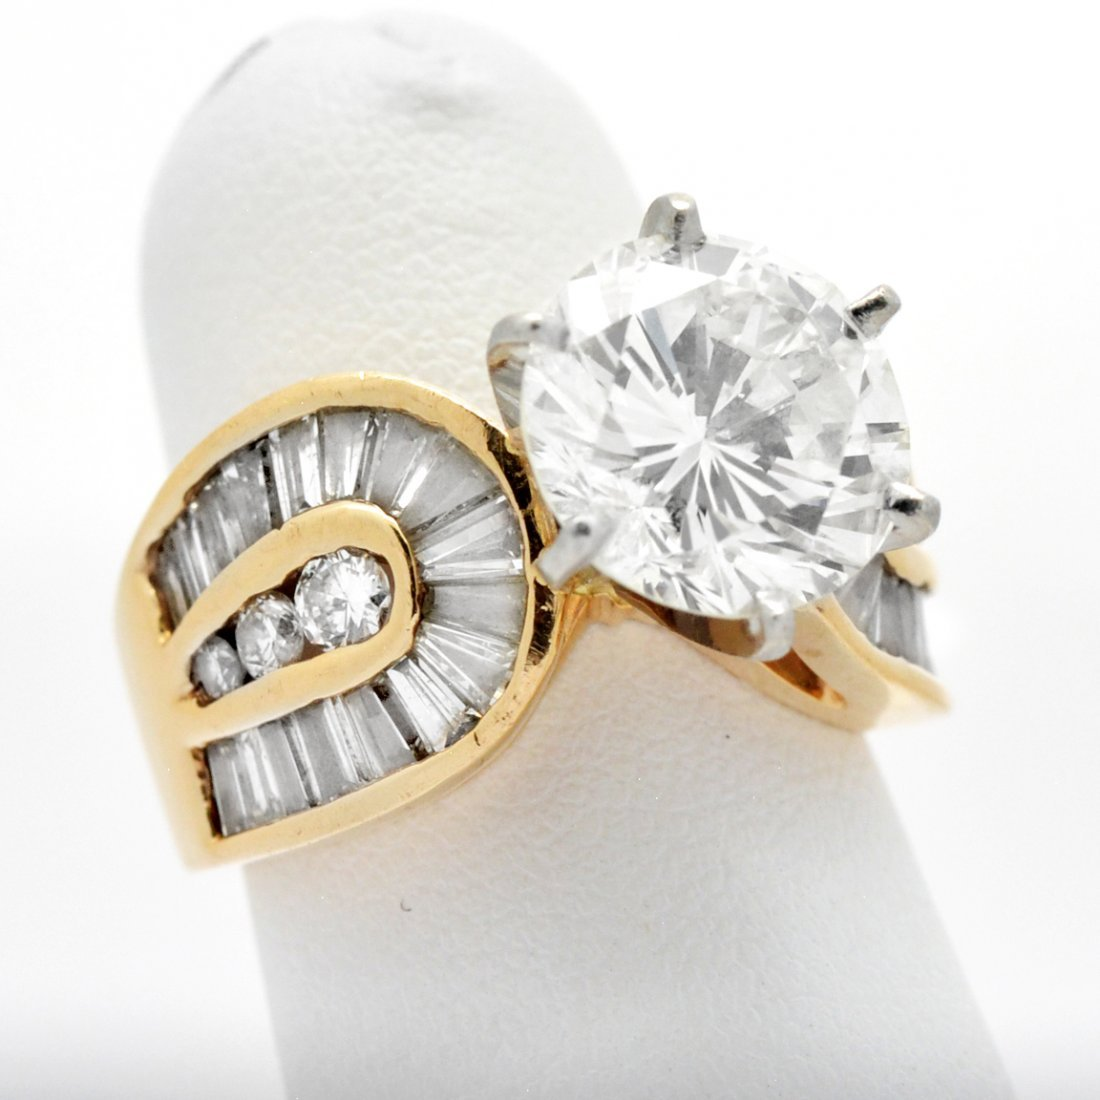 Platinum & Gold 4.04 Carat Diamond Ring